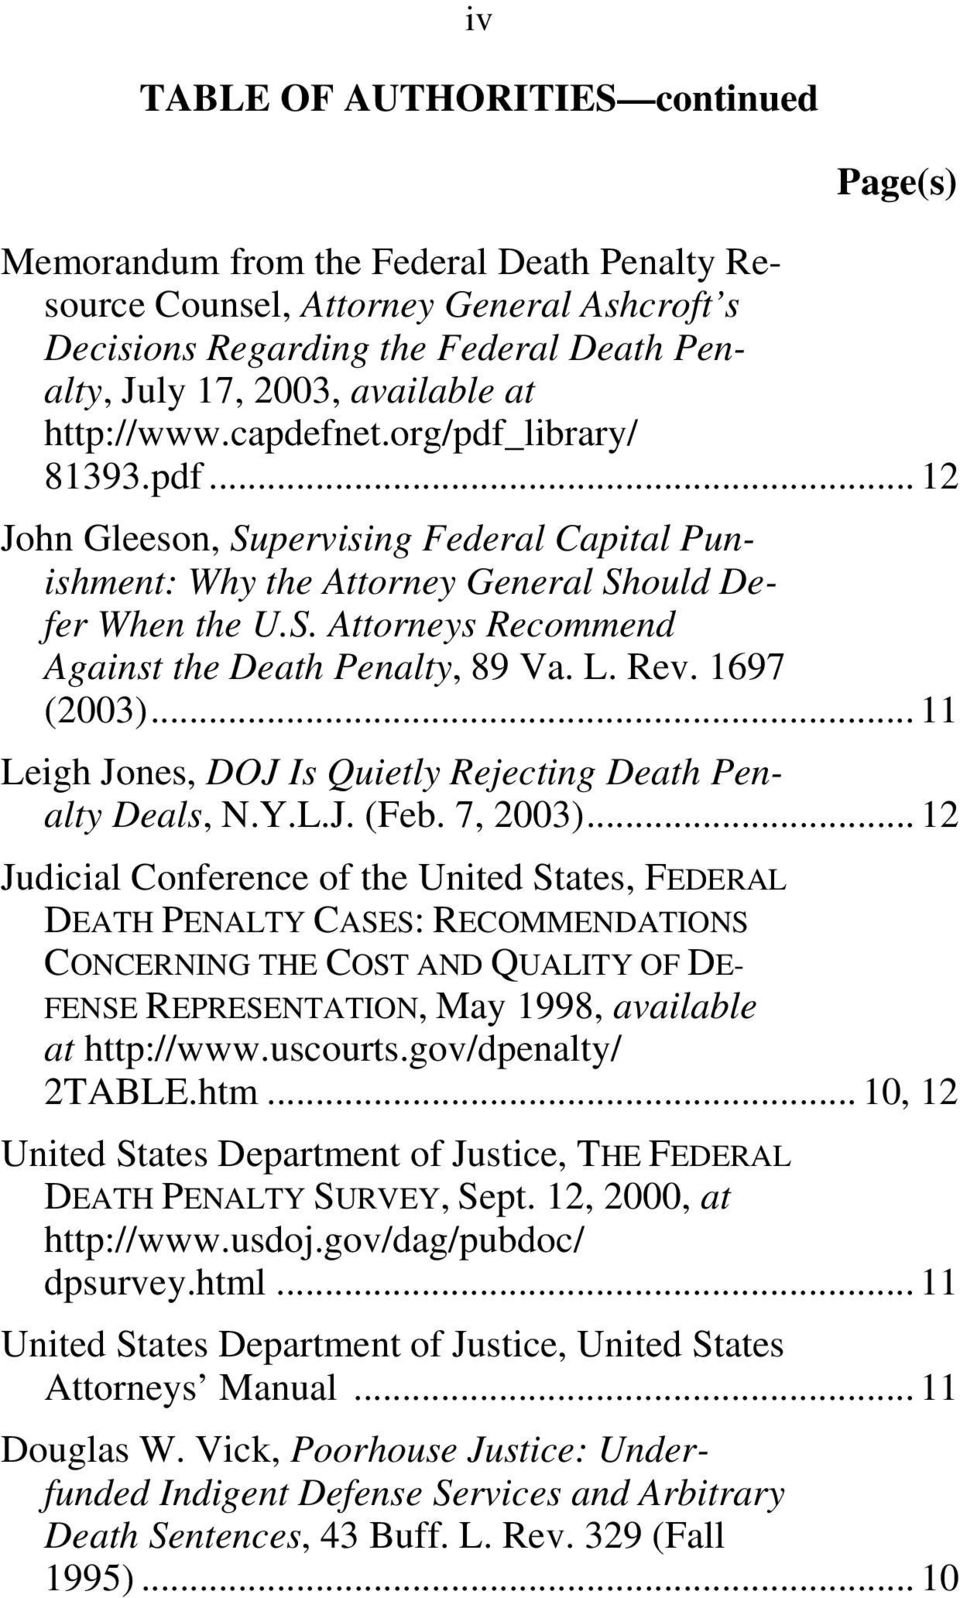 L. Rev. 1697 (2003)... 11 Leigh Jones, DOJ Is Quietly Rejecting Death Penalty Deals, N.Y.L.J. (Feb. 7, 2003).